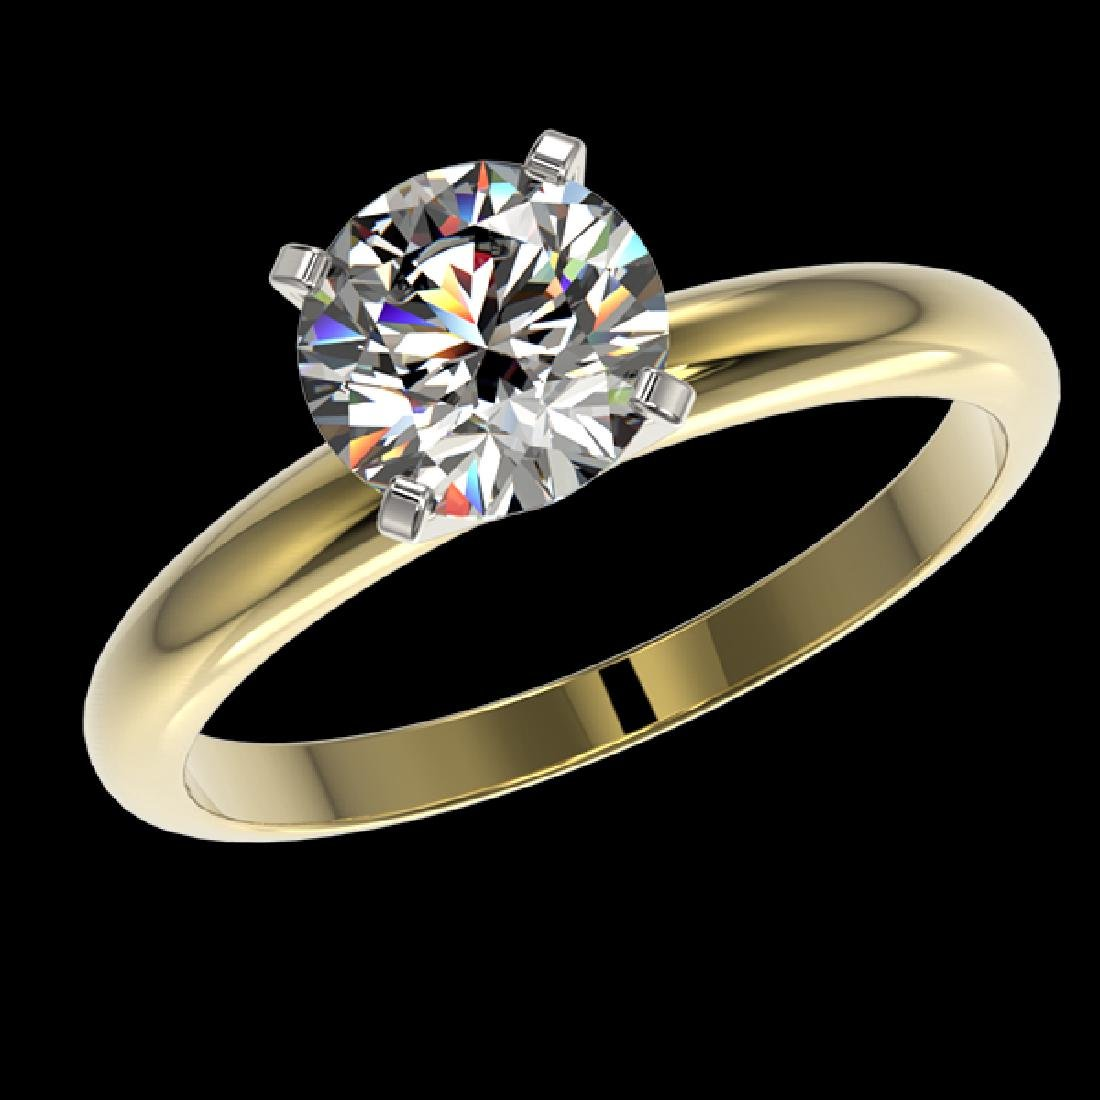 1.57 CTW Certified G-Si Quality Diamond Solitaire - 2